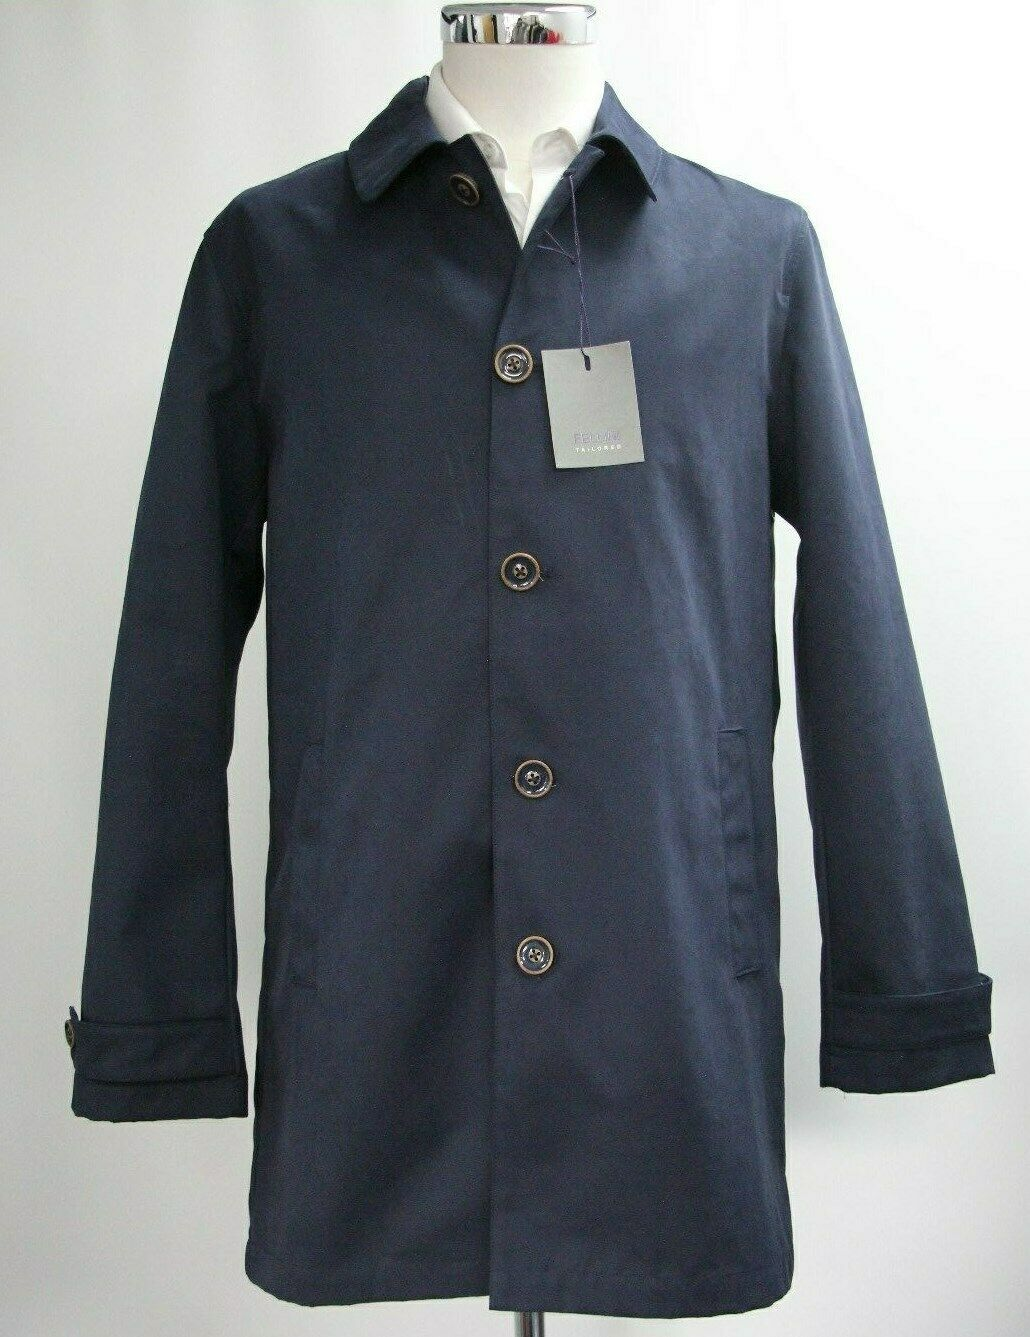 Men's Fellini Tailored Navy bluee Coat (M).. Sample 4171